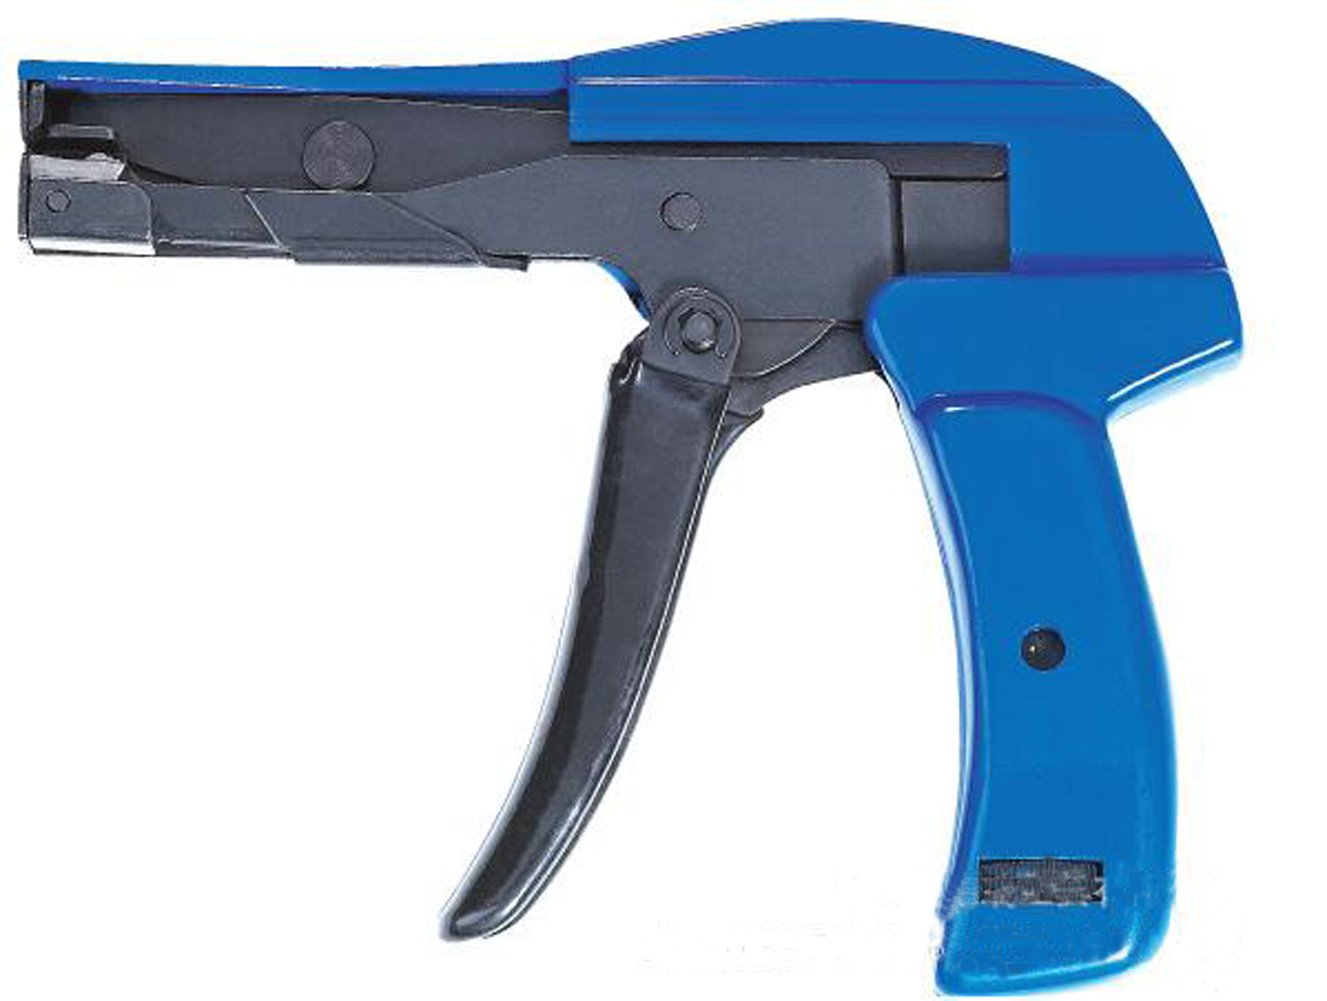 Victosoaring Professional Cable Wire Tie Gun - Install and Cut Plastic Nylon Ties (NCT600)